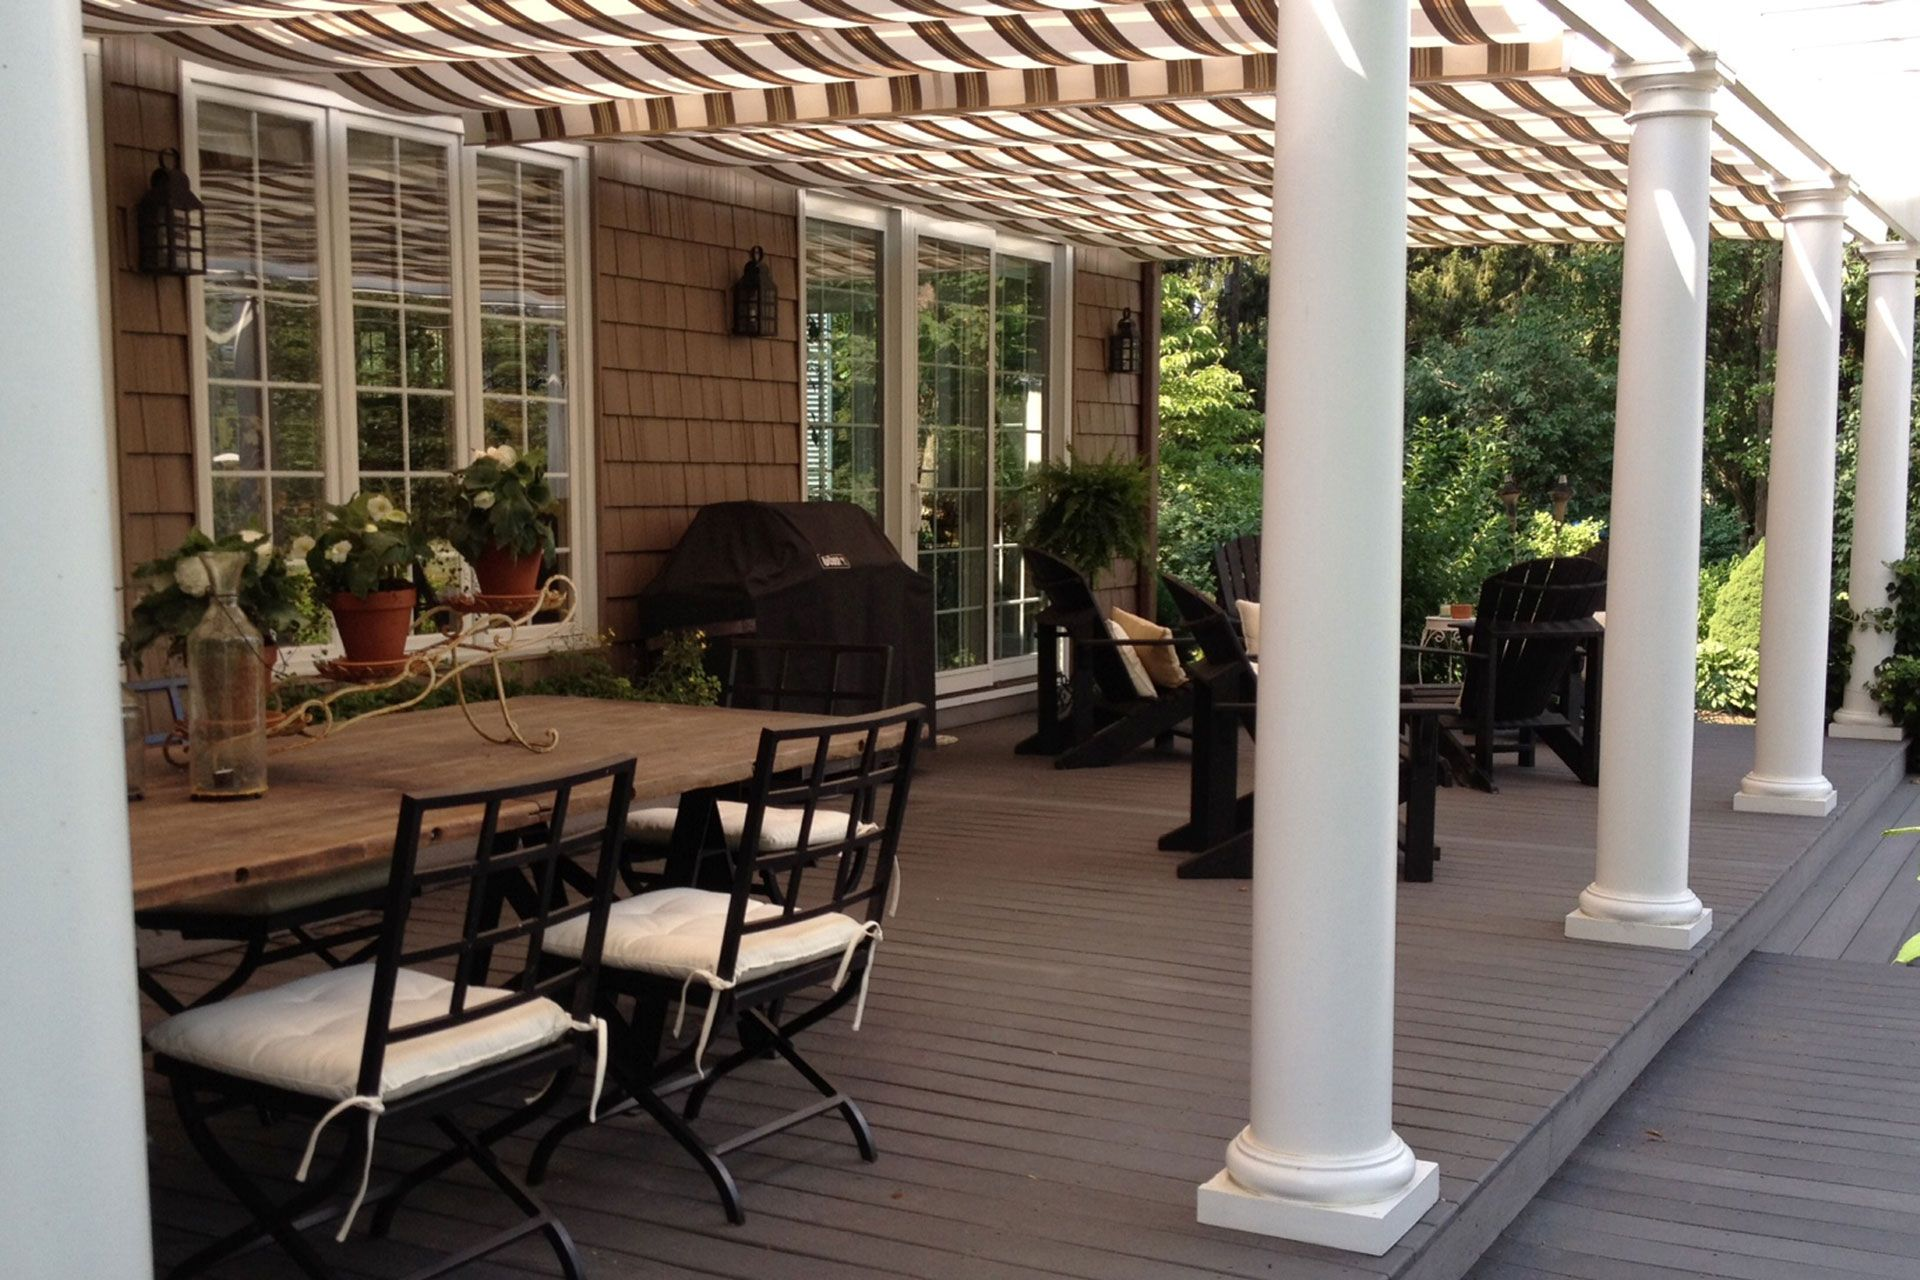 Kissing Retractable Canopies In La Porte - Shadefx Canopies